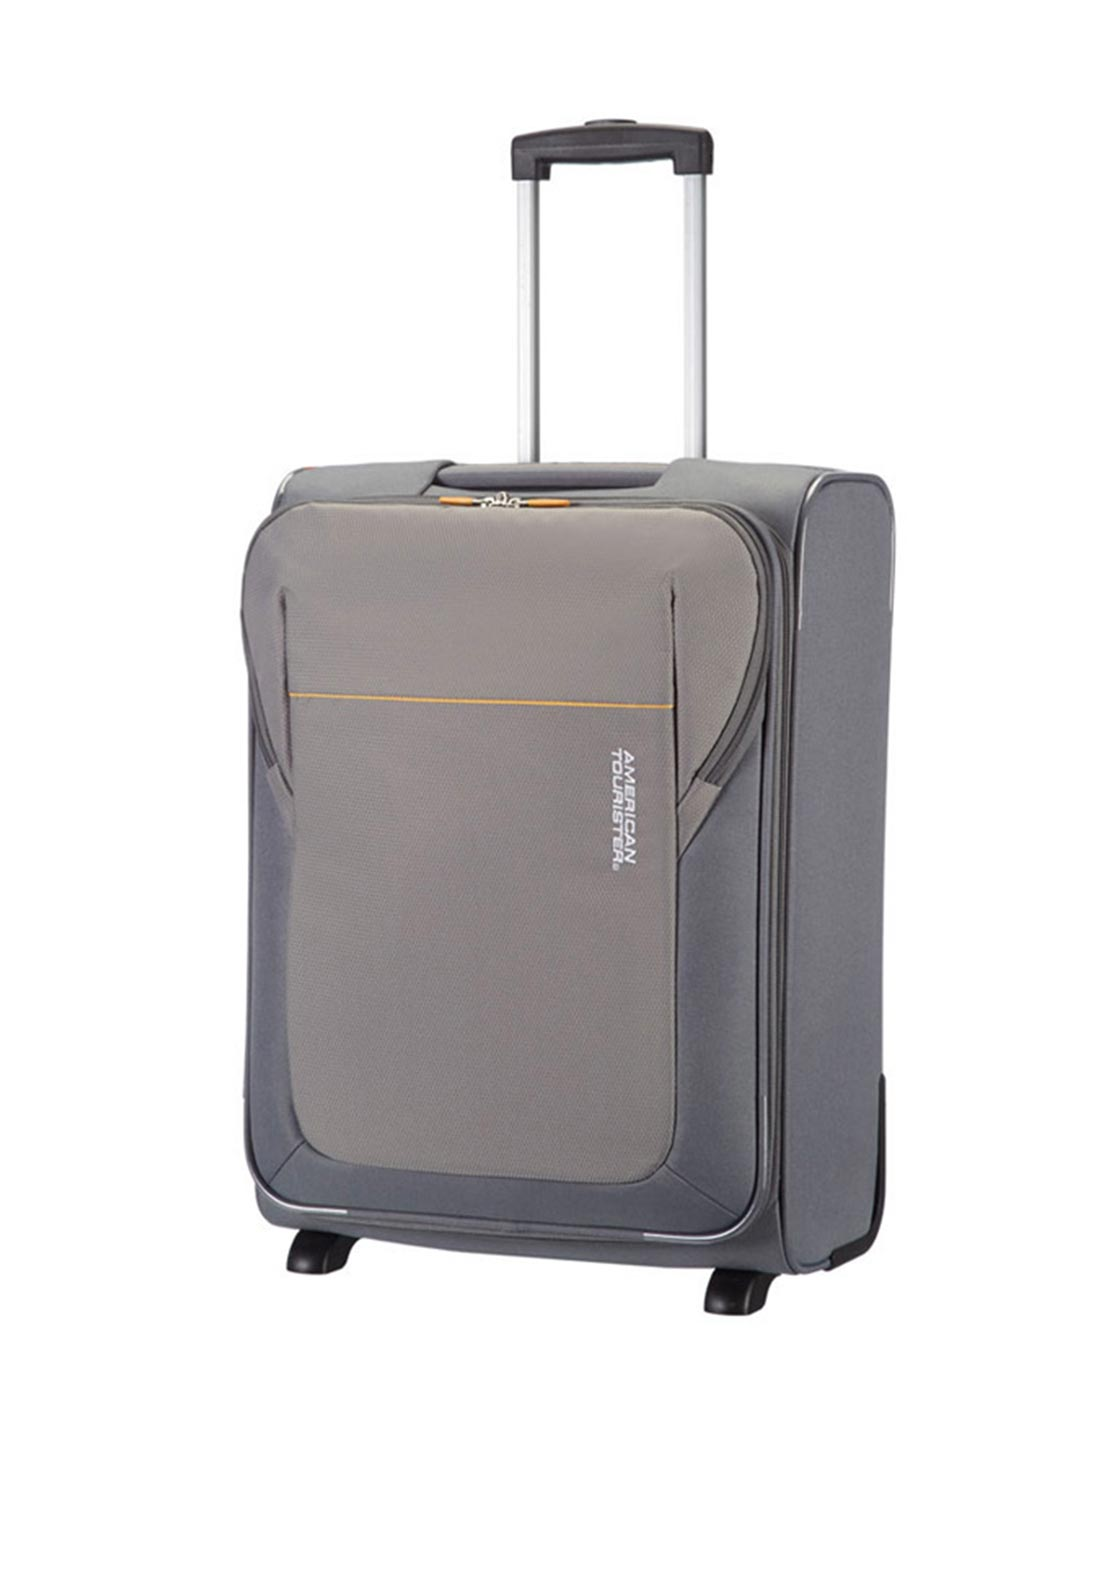 American Tourister San Francisco Upright Cabin Size Suitcase 55cm, Grey